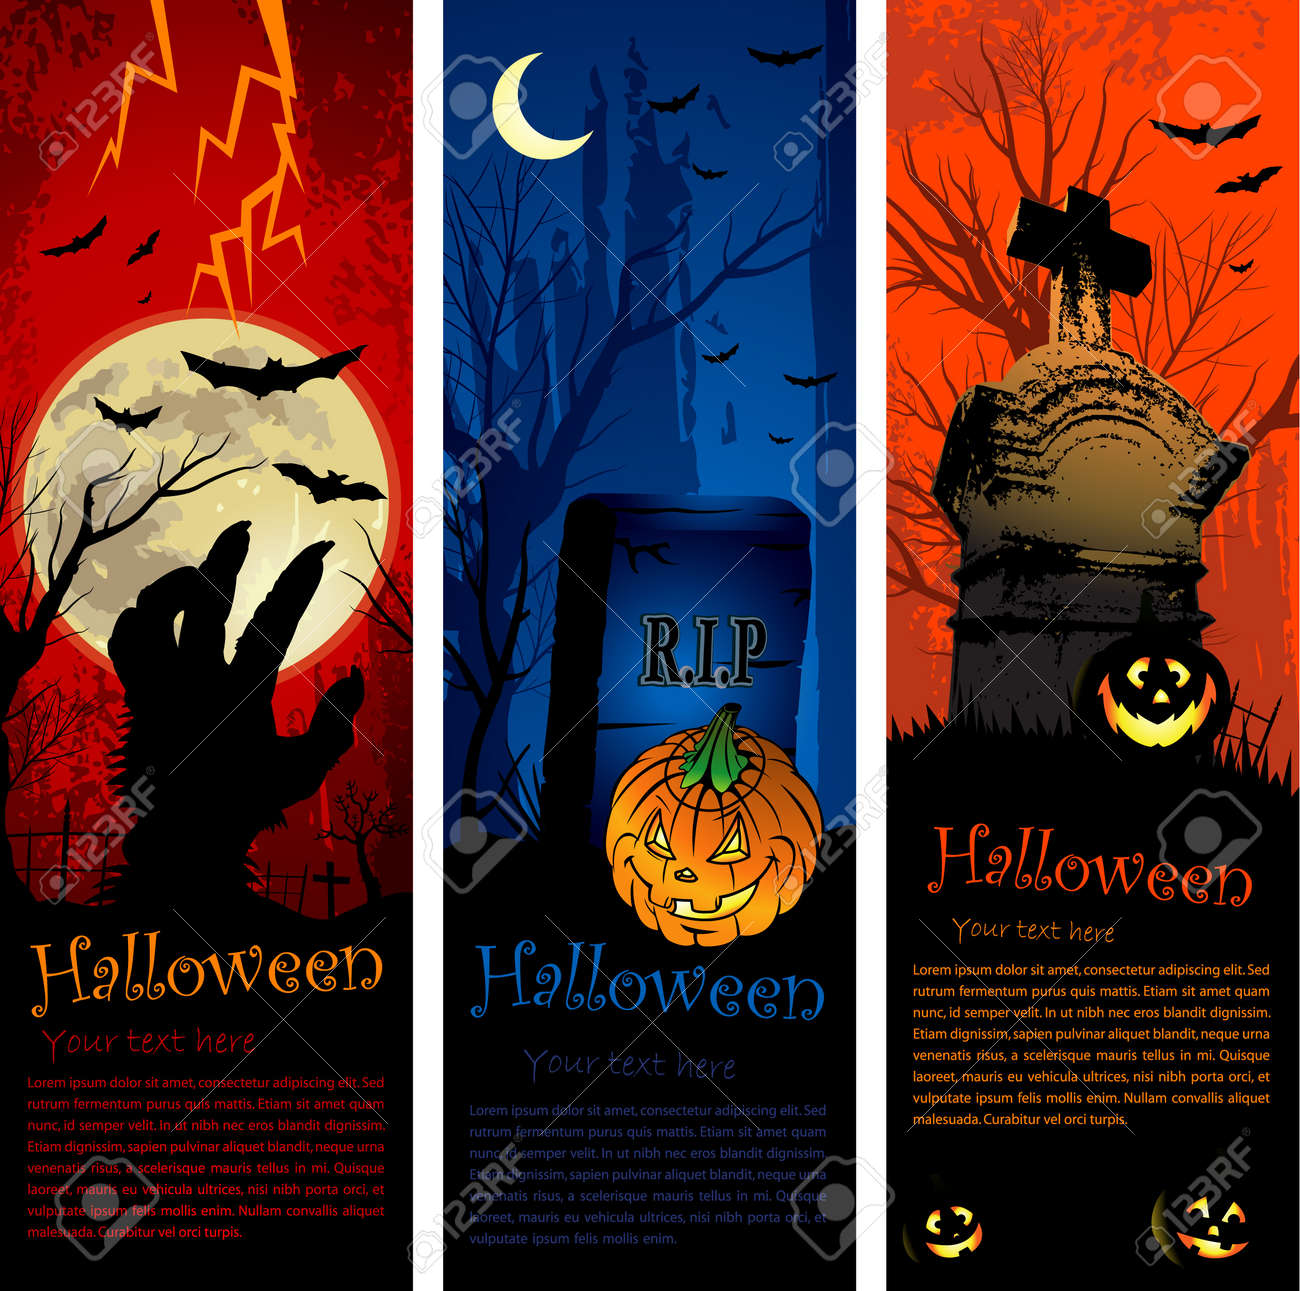 Vertical Copy Space Halloween Party Invitation Banners Royalty ...